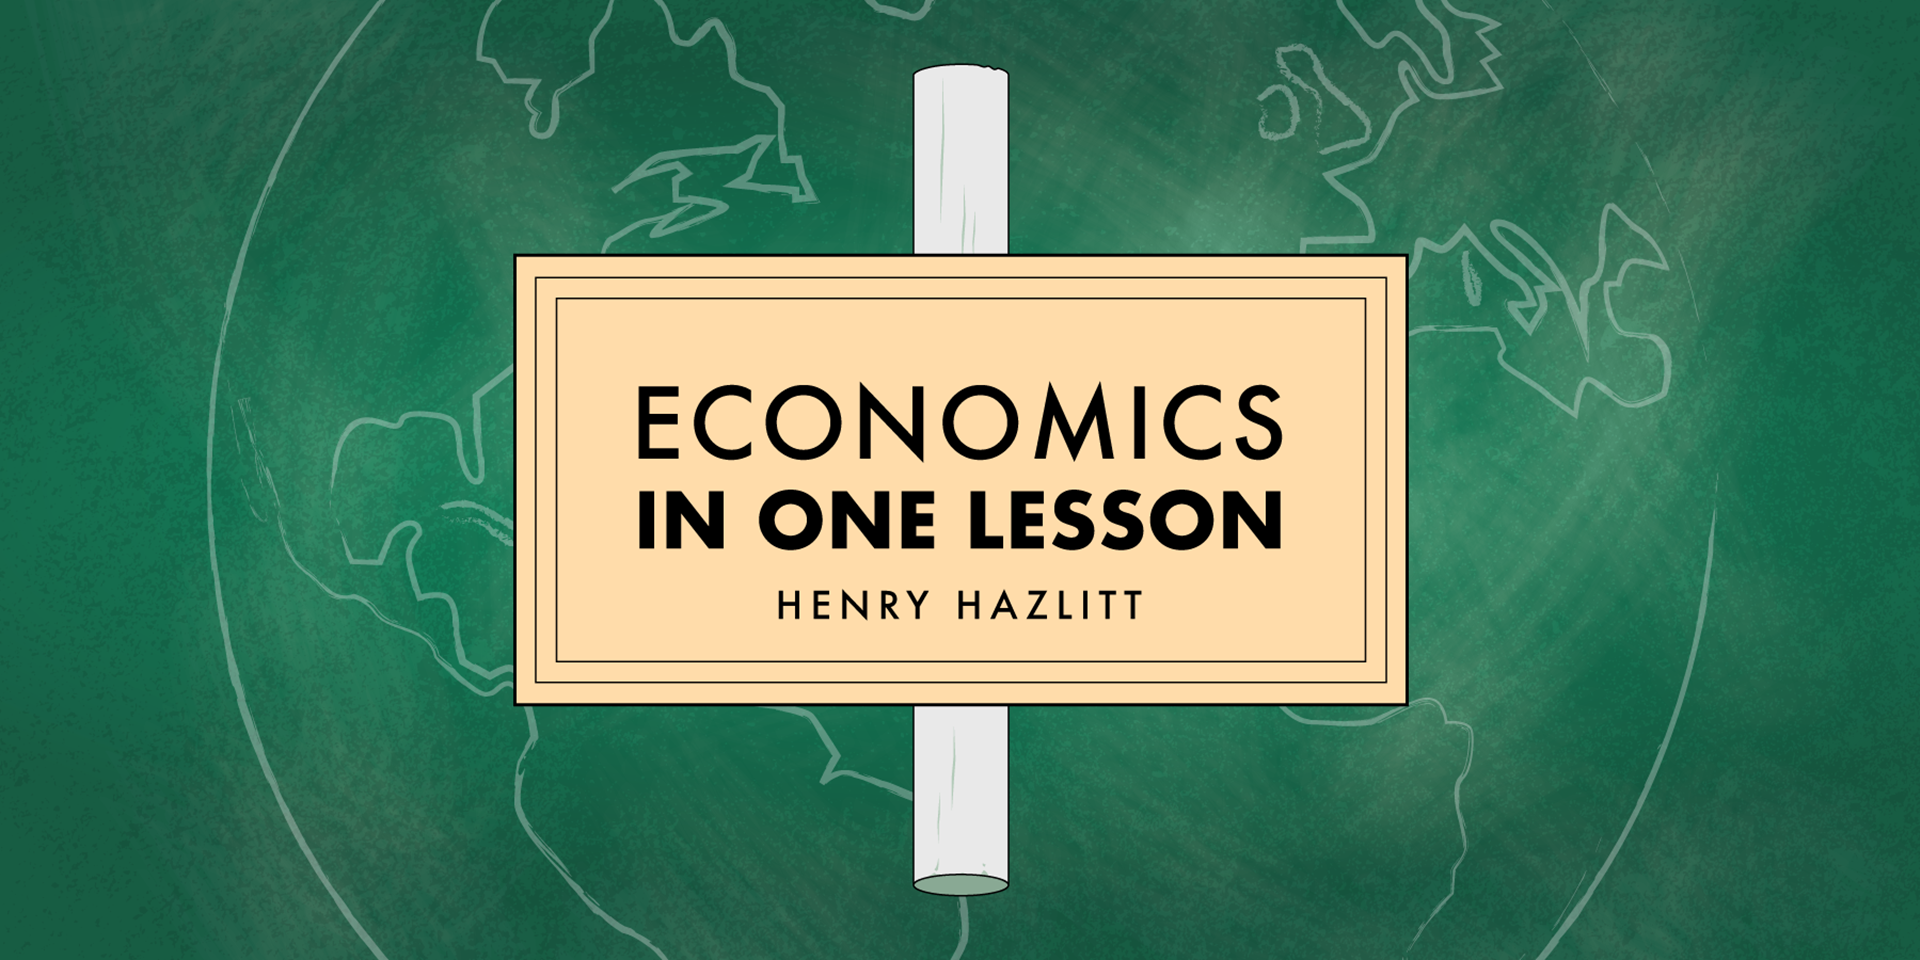 a19acb815 Economics in One Lesson - Foundation for Economic Education